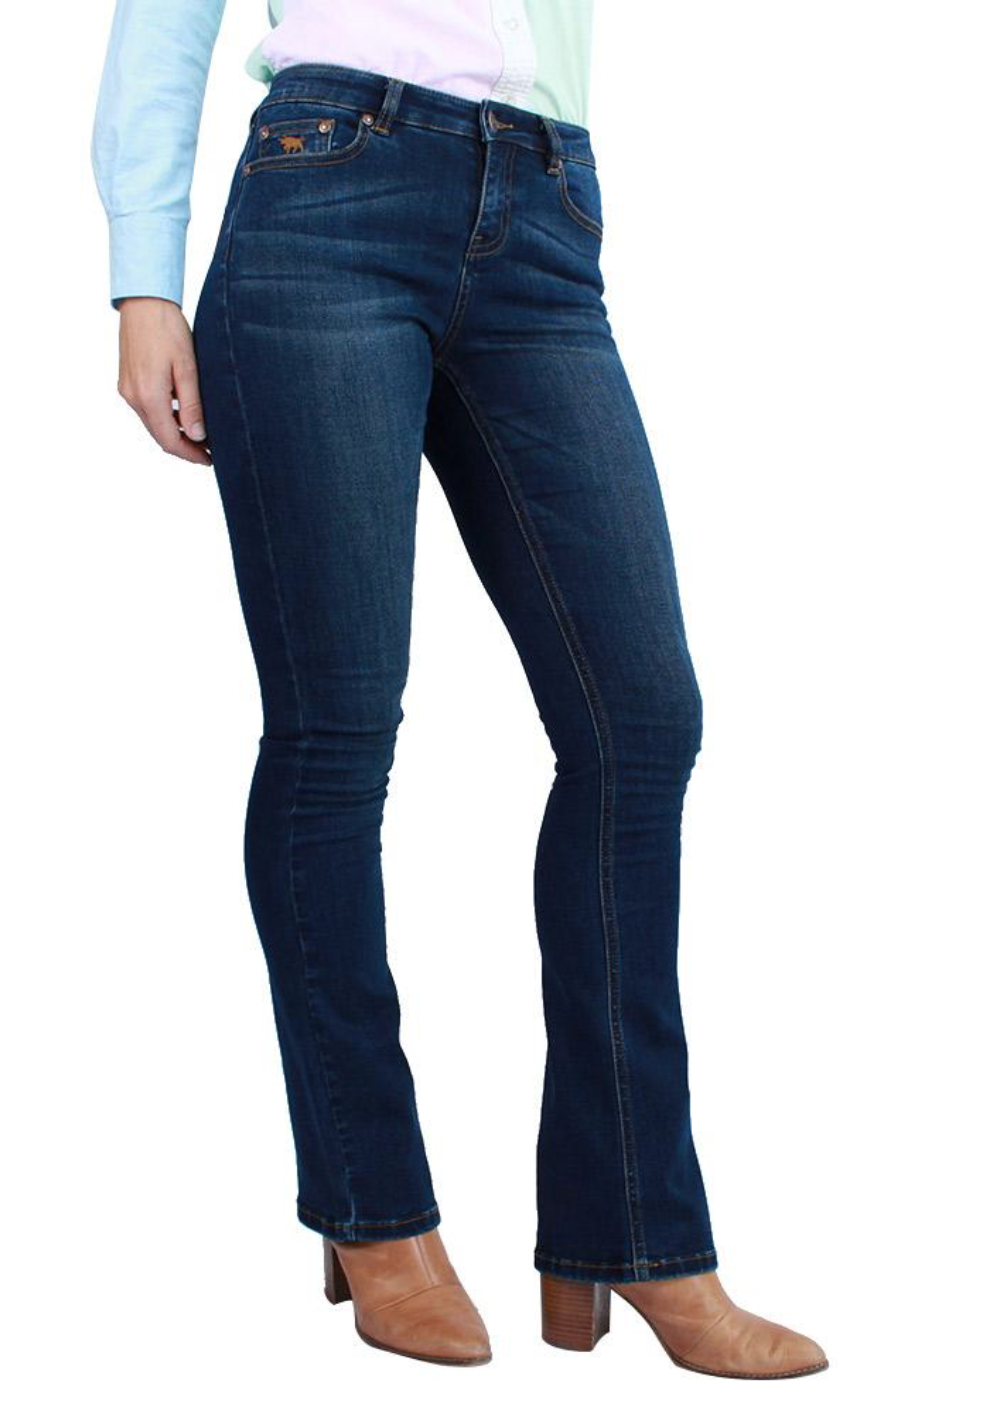 Ringers Western | Womens | Jeans | Waist Mid | Bootcut | 34"